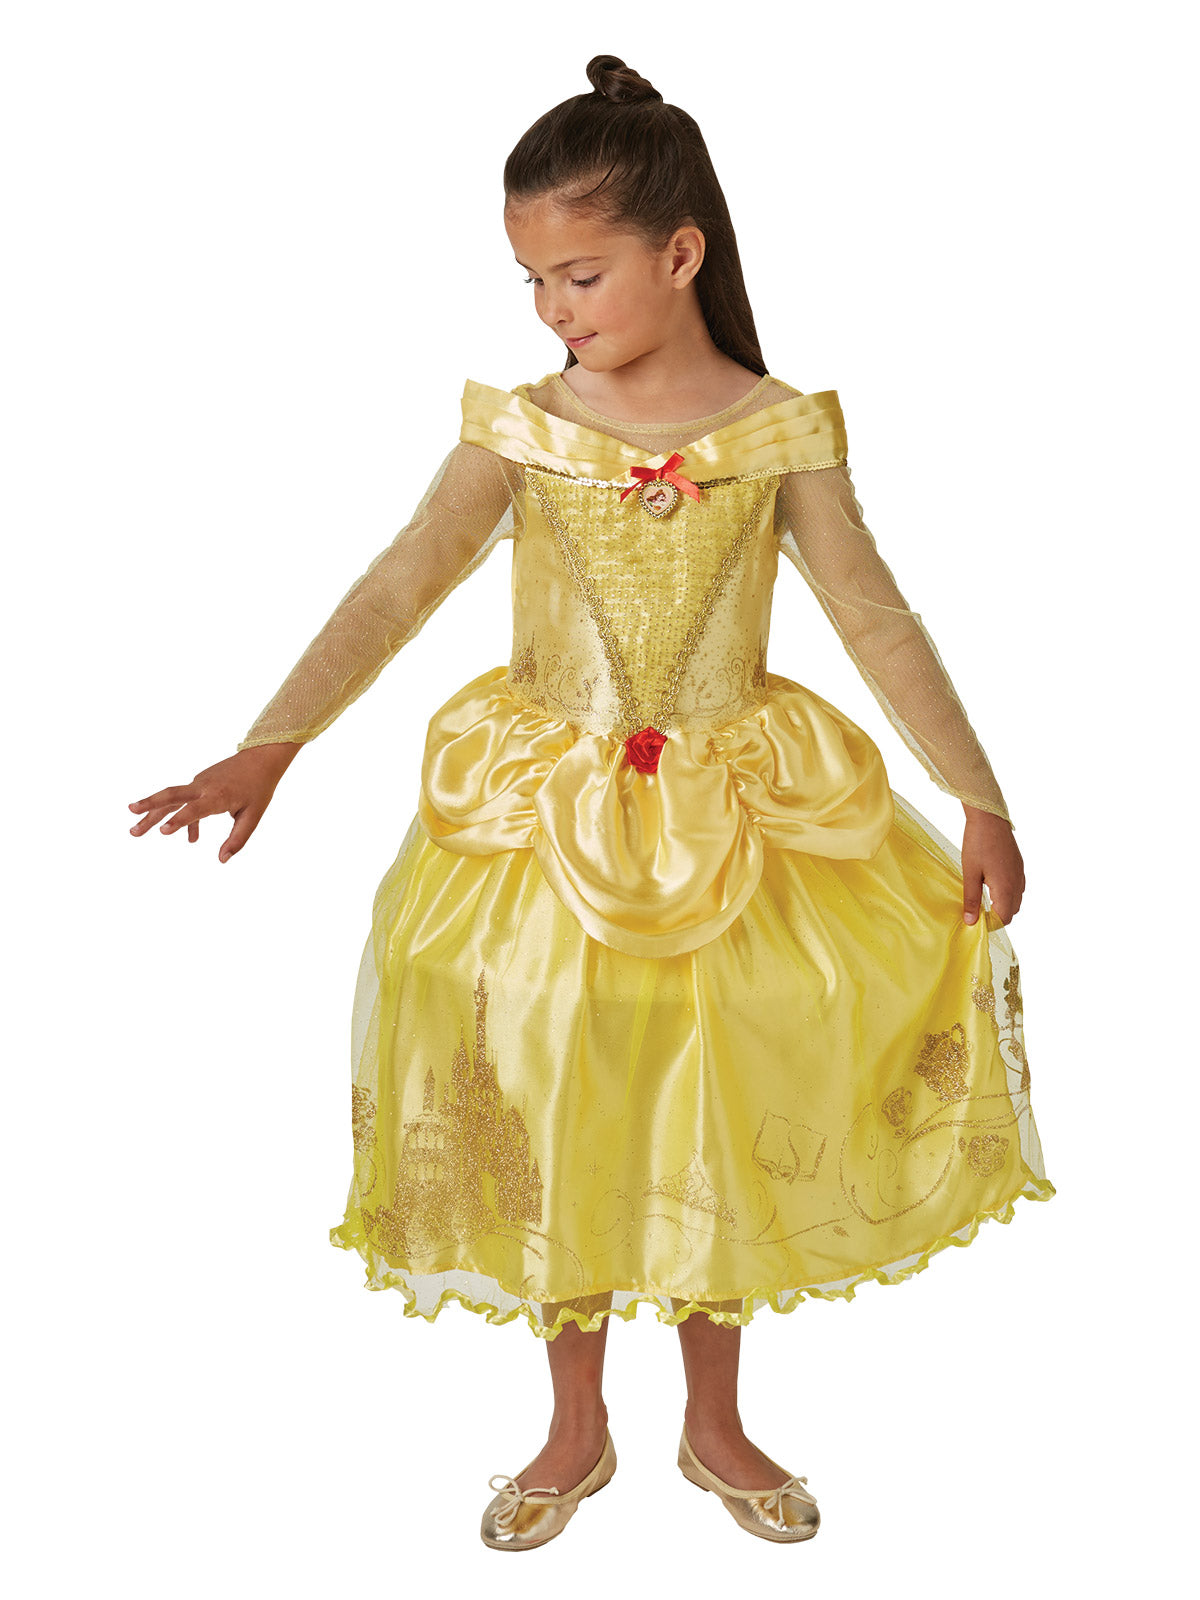 BELLE AND THE BEAST BALLGOWN, CHILD - SIZE S